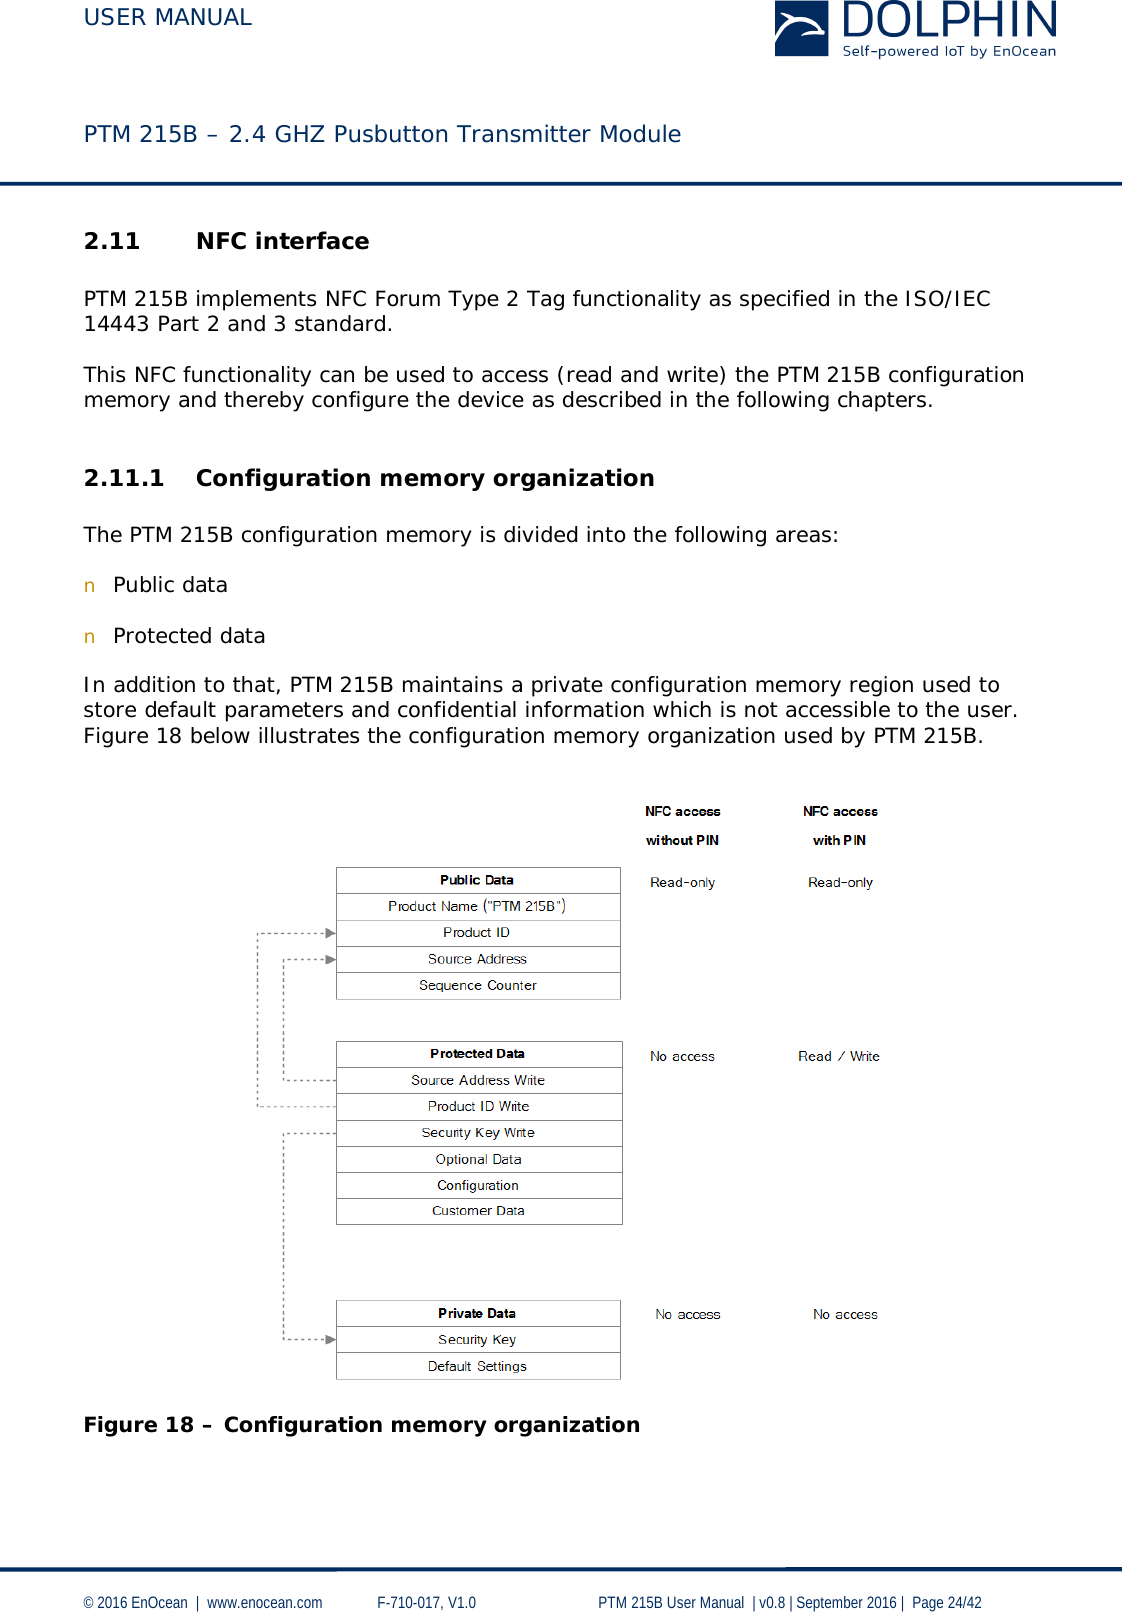 USER MANUAL    PTM 215B – 2.4 GHZ Pusbutton Transmitter Module  © 2016 EnOcean     www.enocean.com   F-710-017, V1.0        PTM 215B User Manual    v0.8   September 2016    Page 24/42  2.11 NFC interface  PTM 215B implements NFC Forum Type 2 Tag functionality as specified in the ISO/IEC 14443 Part 2 and 3 standard.   This NFC functionality can be used to access (read and write) the PTM 215B configuration memory and thereby configure the device as described in the following chapters.  2.11.1 Configuration memory organization  The PTM 215B configuration memory is divided into the following areas:  n Public data  n Protected data  In addition to that, PTM 215B maintains a private configuration memory region used to store default parameters and confidential information which is not accessible to the user. Figure 18 below illustrates the configuration memory organization used by PTM 215B.     Figure 18 – Configuration memory organization